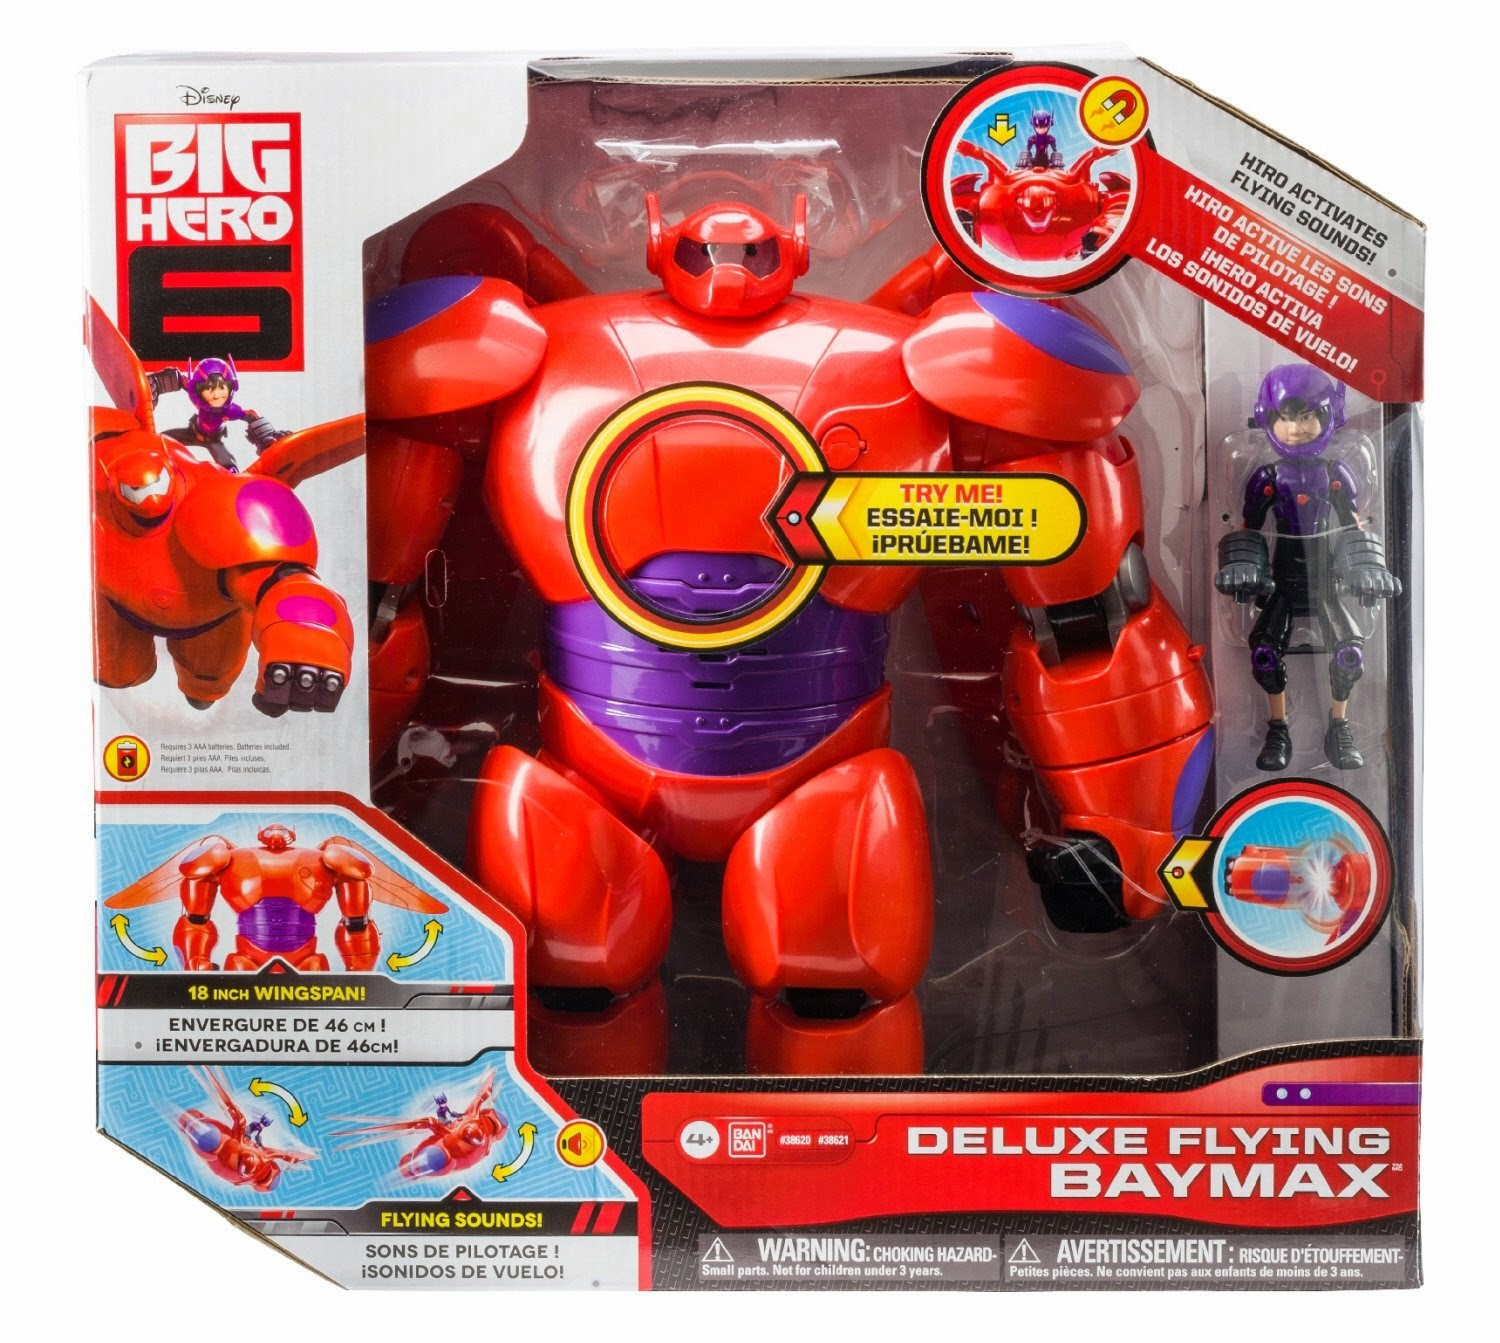 Latest Trending Toys for Boys and Girls Big Hero 6 Toys very